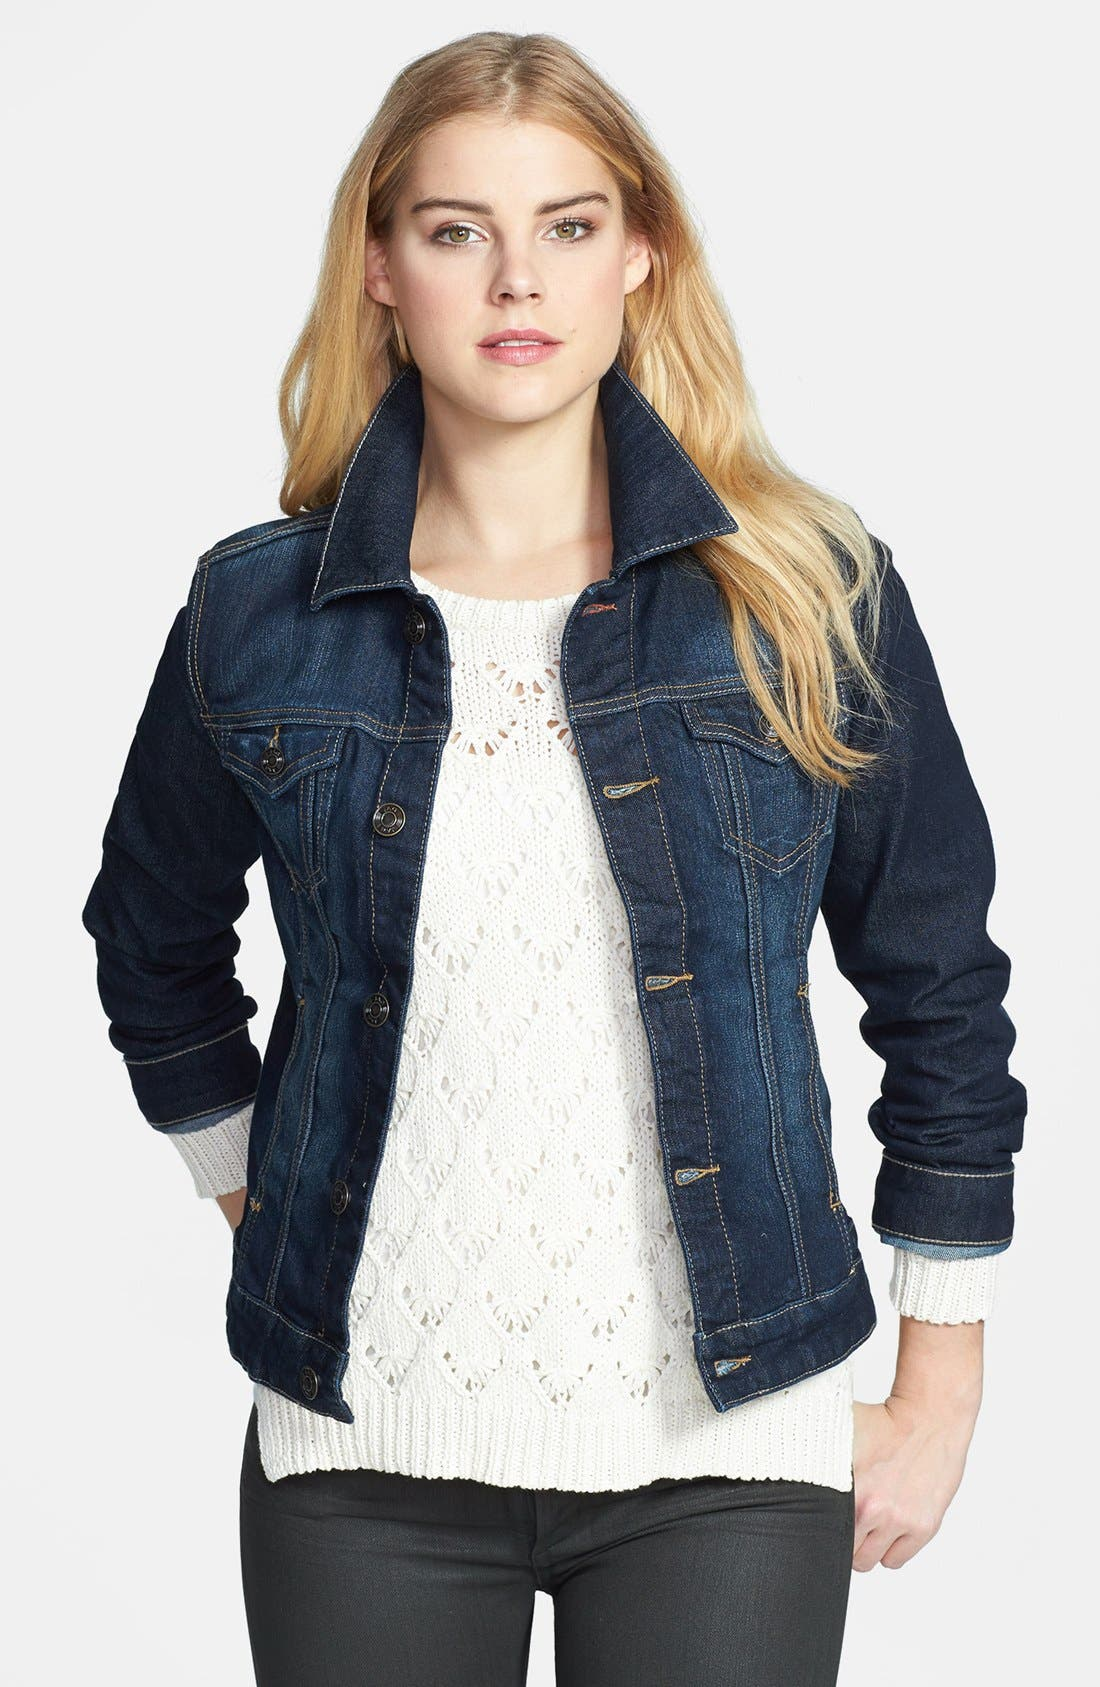 Alternate Image 1 Selected - Jag Jeans 'Rupert' Denim Jacket (Petite)